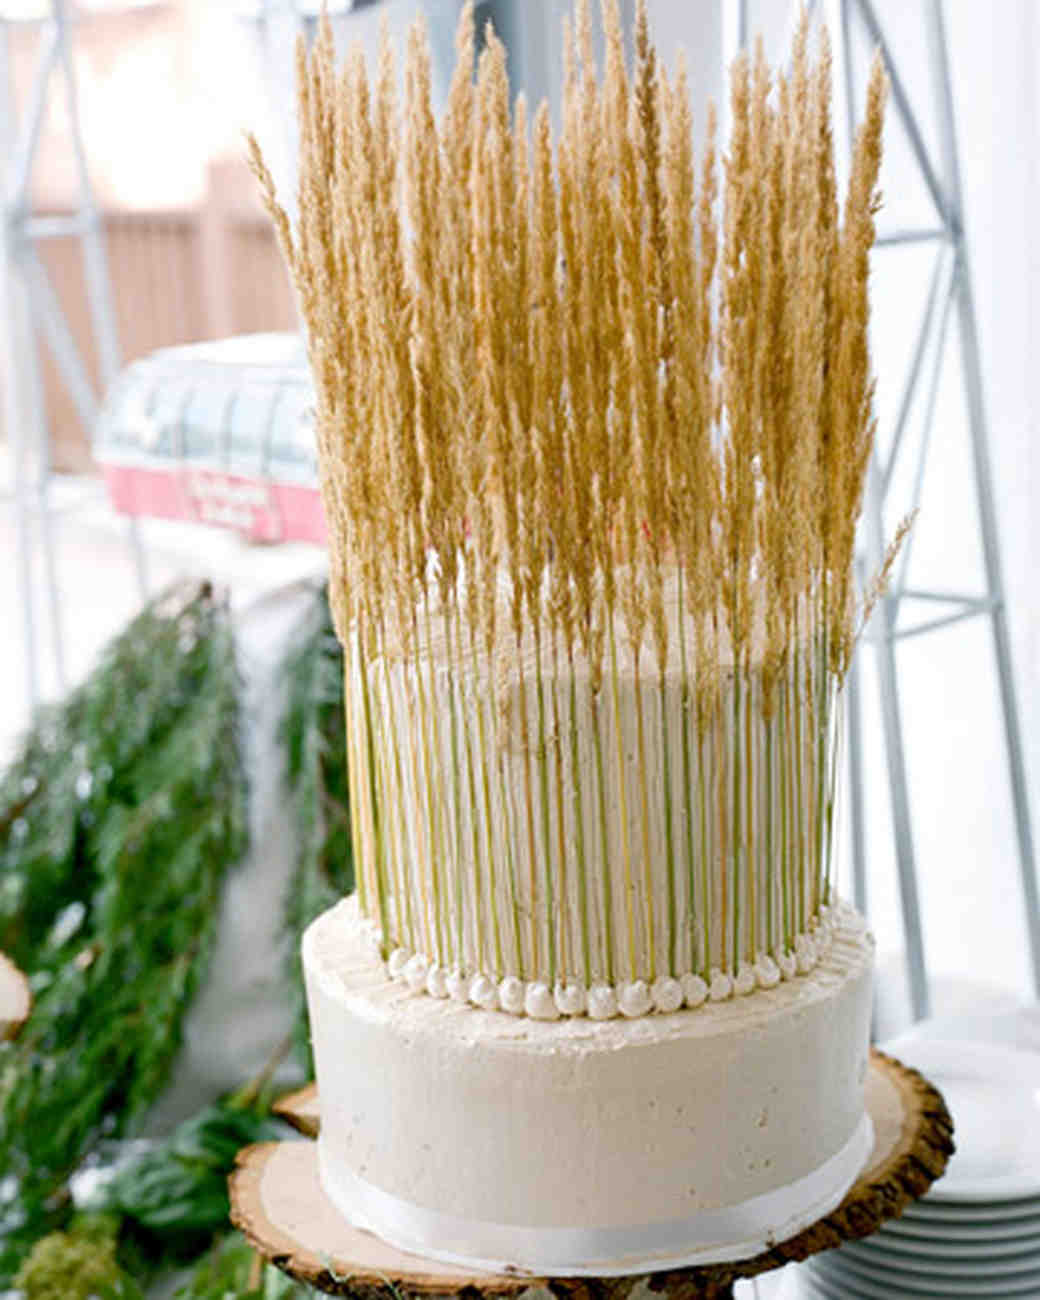 Wedding Cake With Wheat Stalks